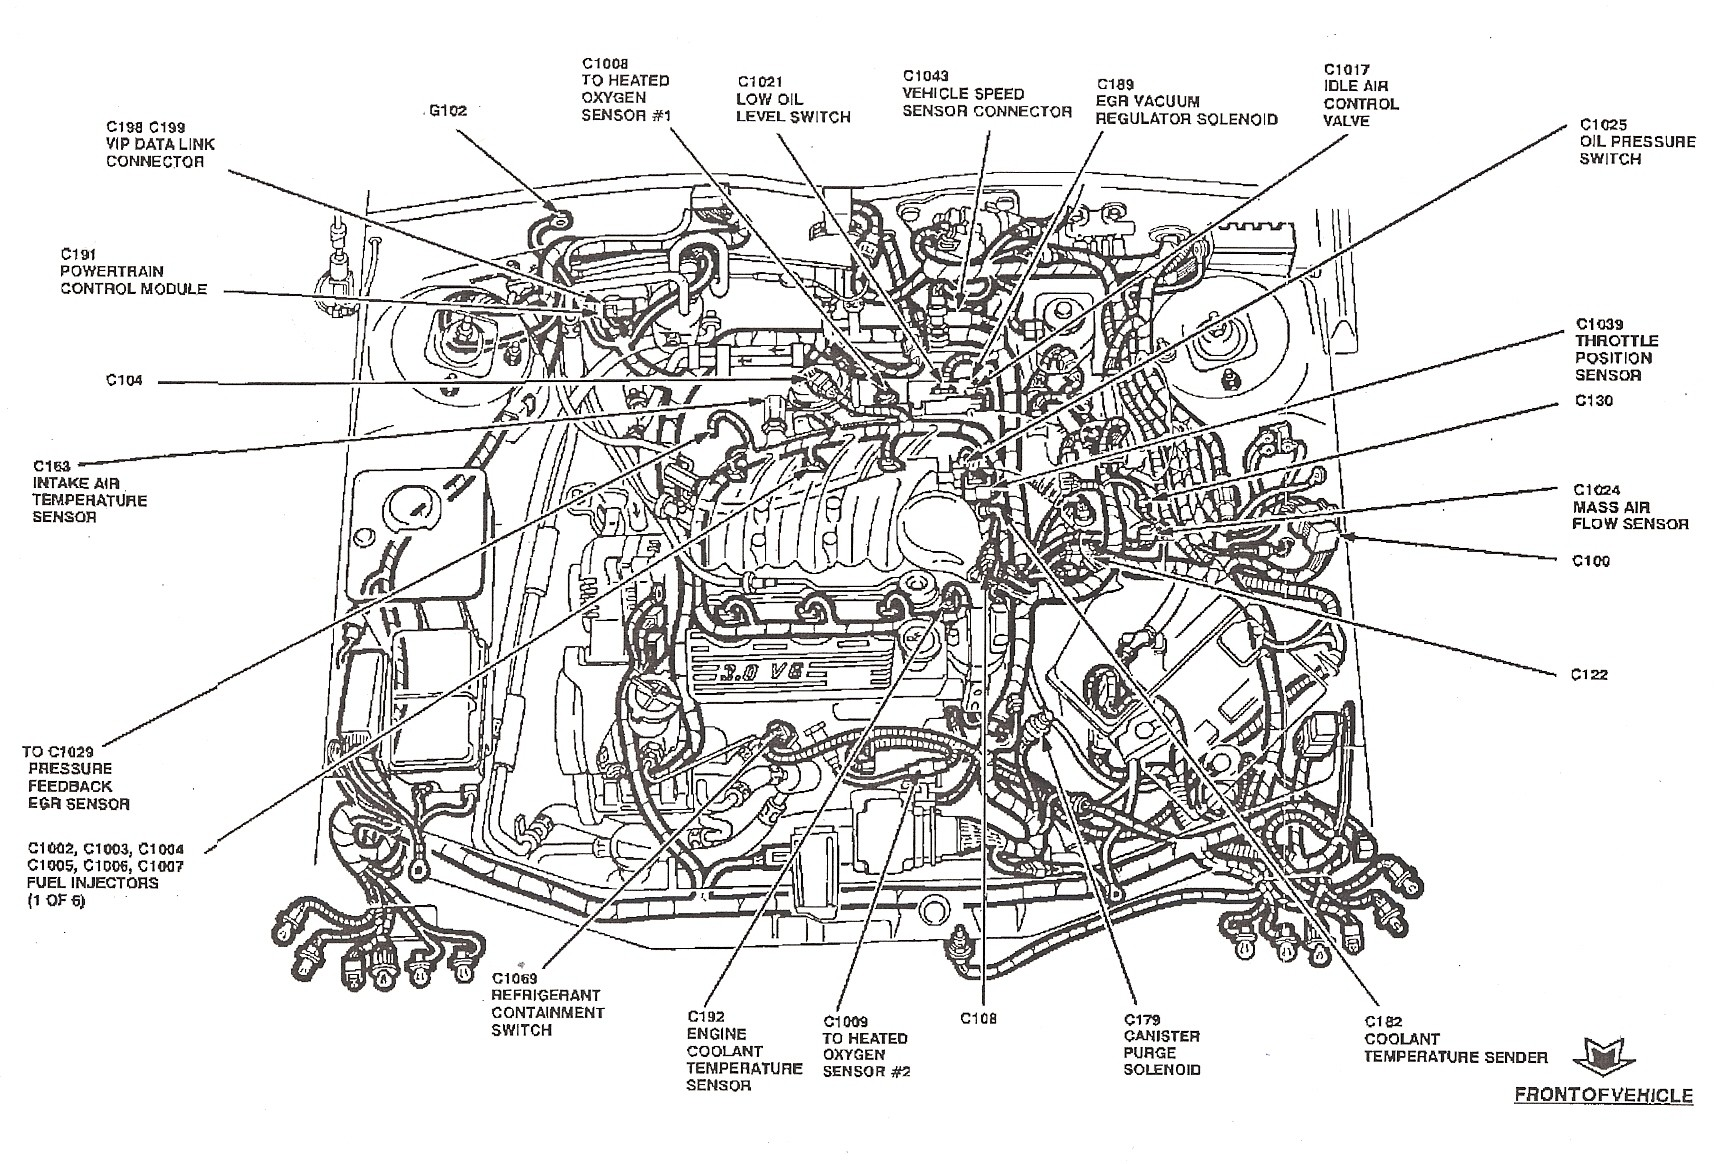 2003 Ford Focus Zts Engine Diagram • Wiring Diagram For Free